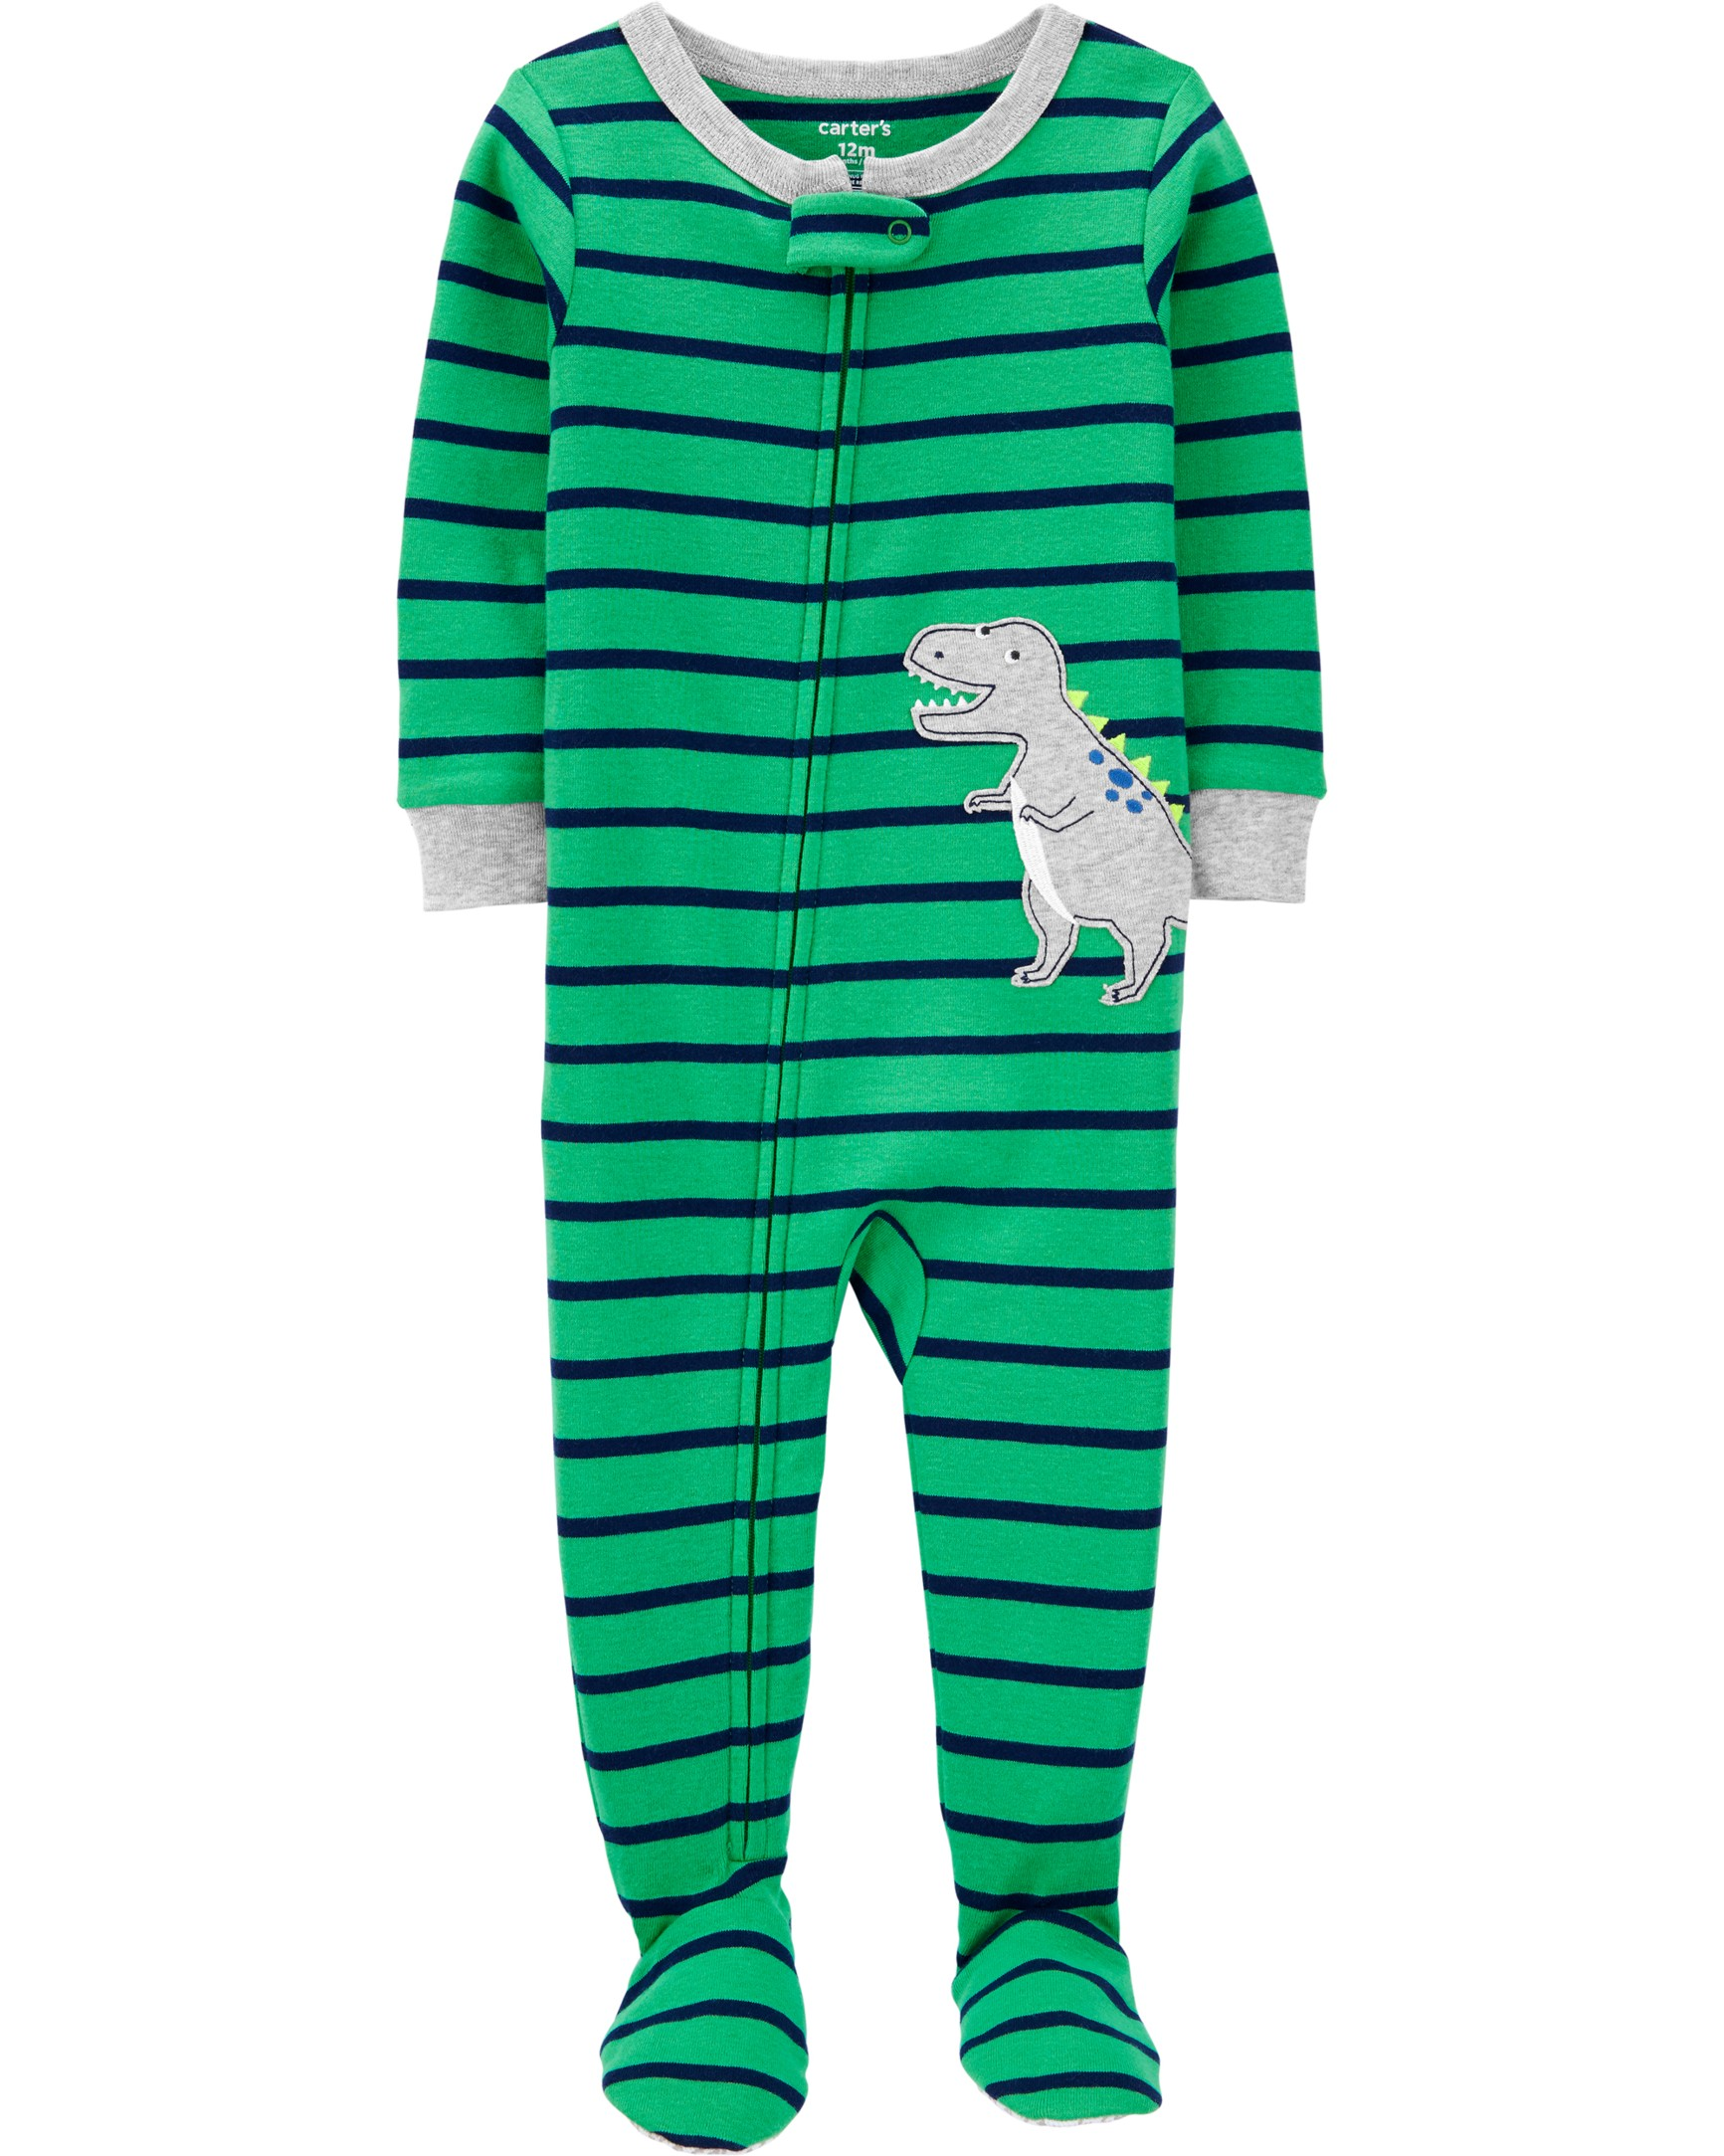 CARTERS Overal zip Dinosaur chlapec 12m vel. 80